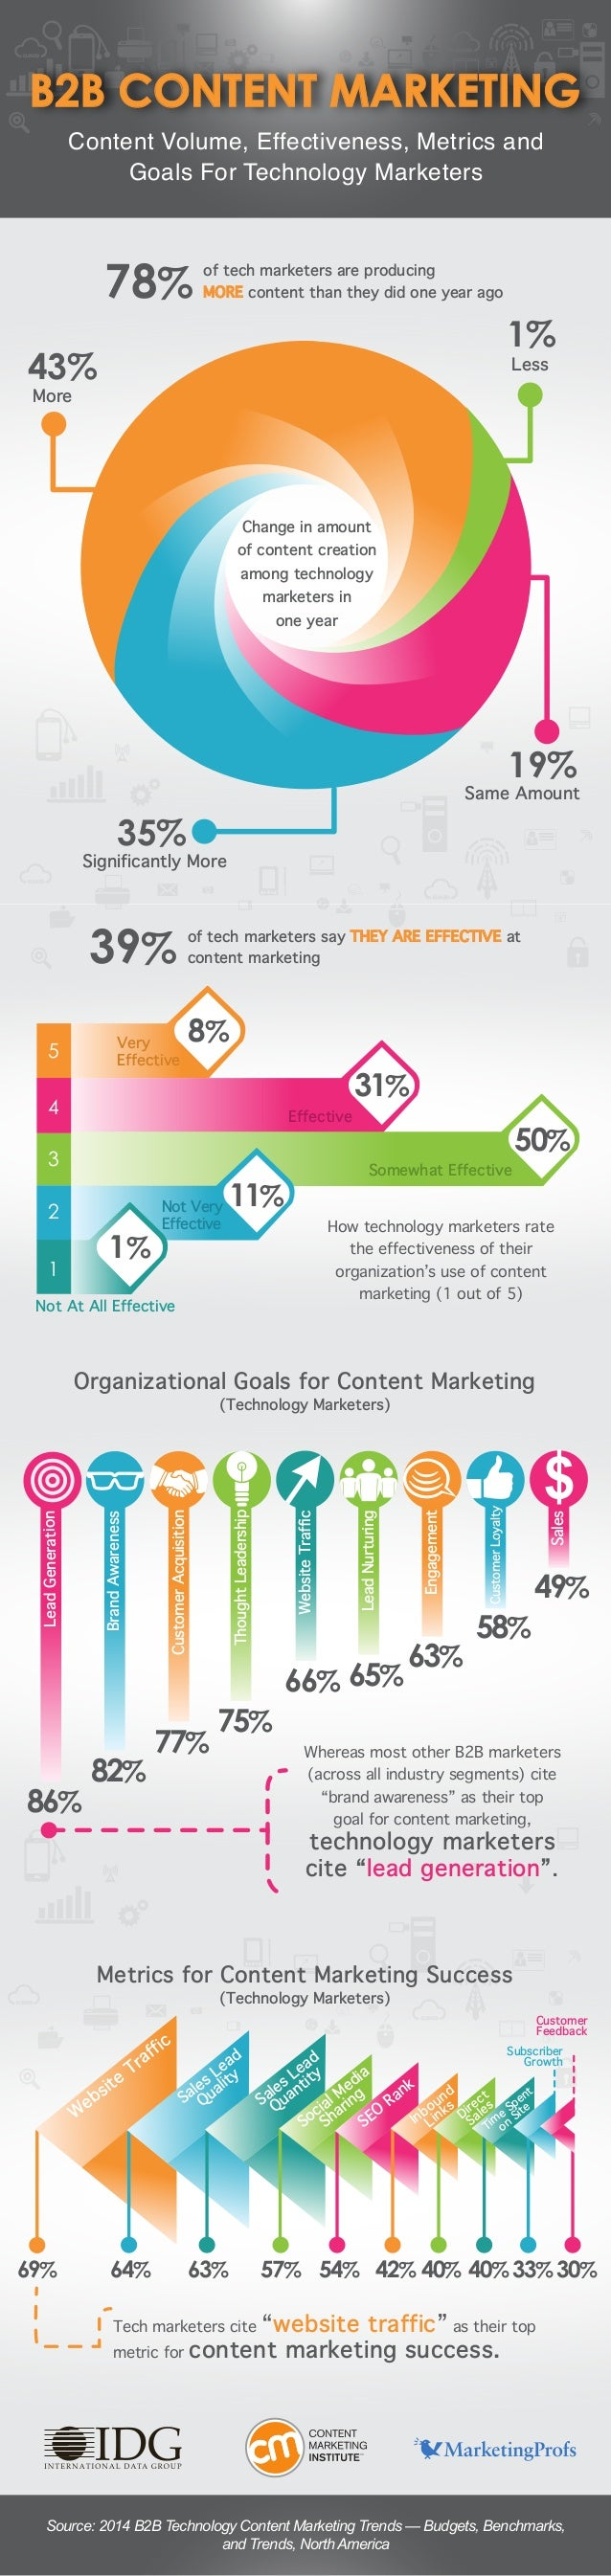 """Whereas most other B2B marketers (across all industry segments) cite """"brand awareness"""" as their top goal for content marke..."""